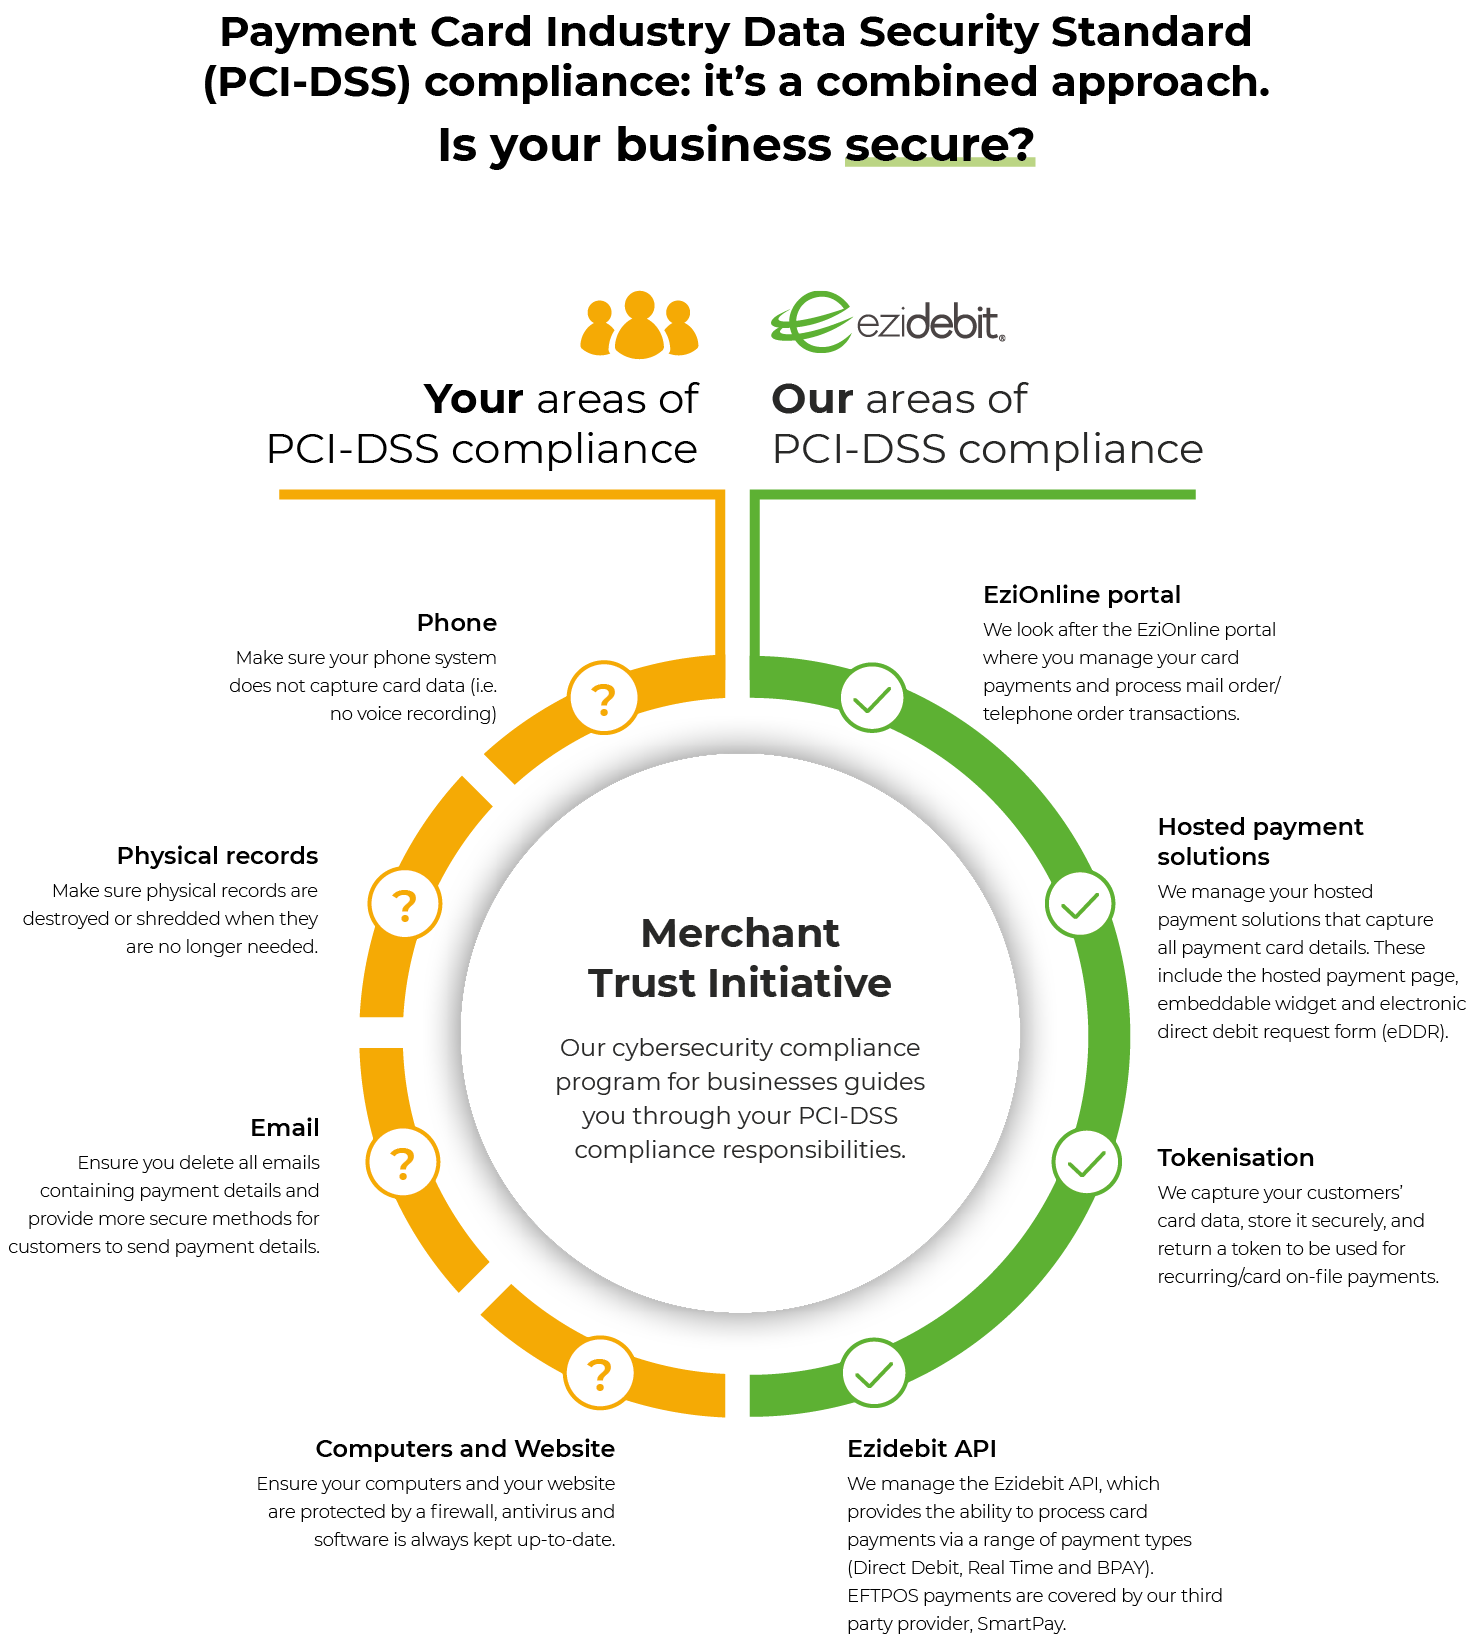 PCI DSS Compliance is a combined approach. Is your business secure?